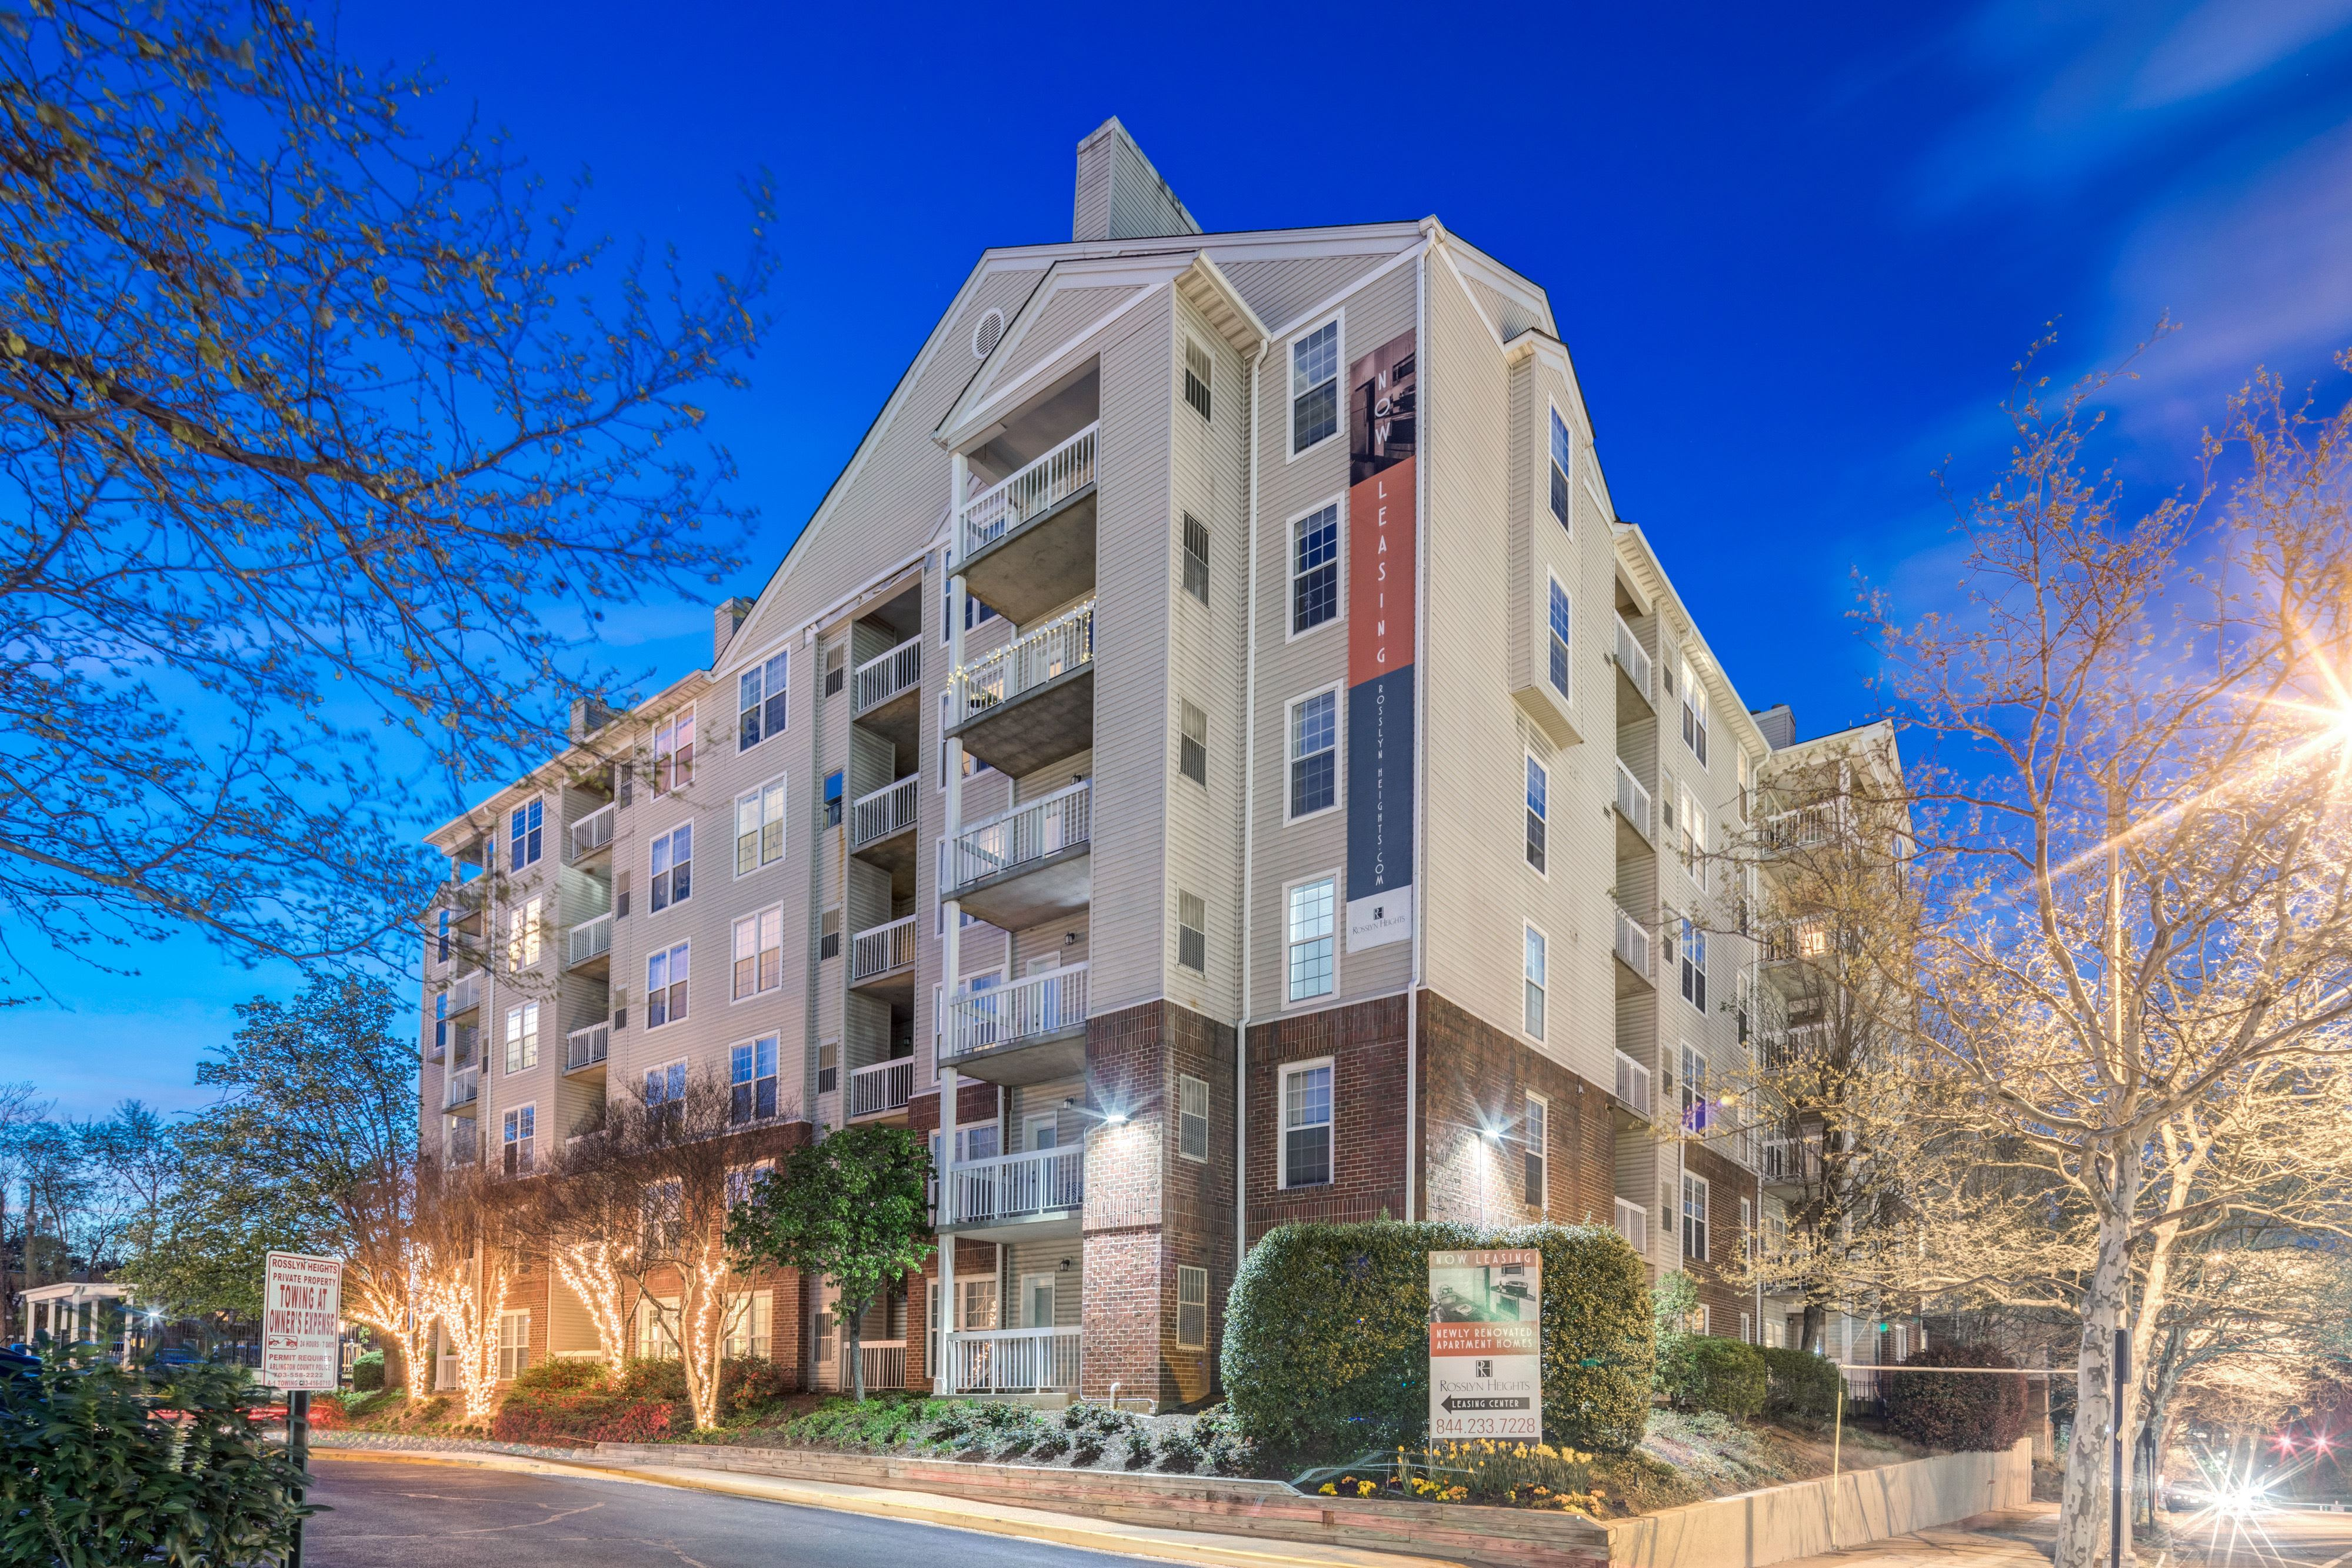 20 Best Furnished Apartments For Rent In Arlington Va With Pics